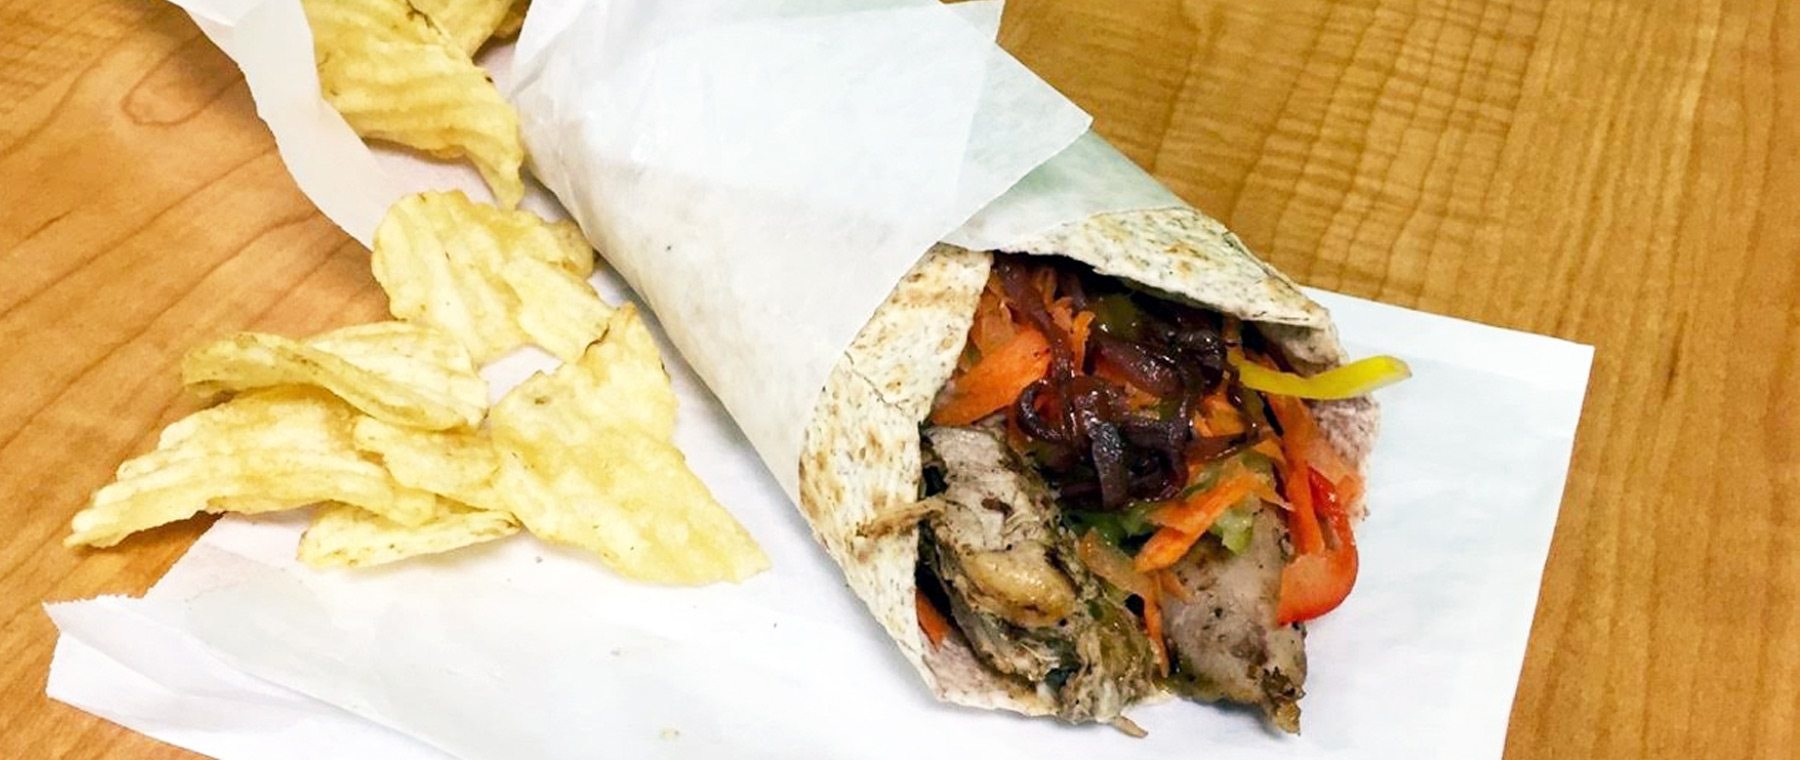 CFC's jerk chicken tucked inside the soft flour tortilla